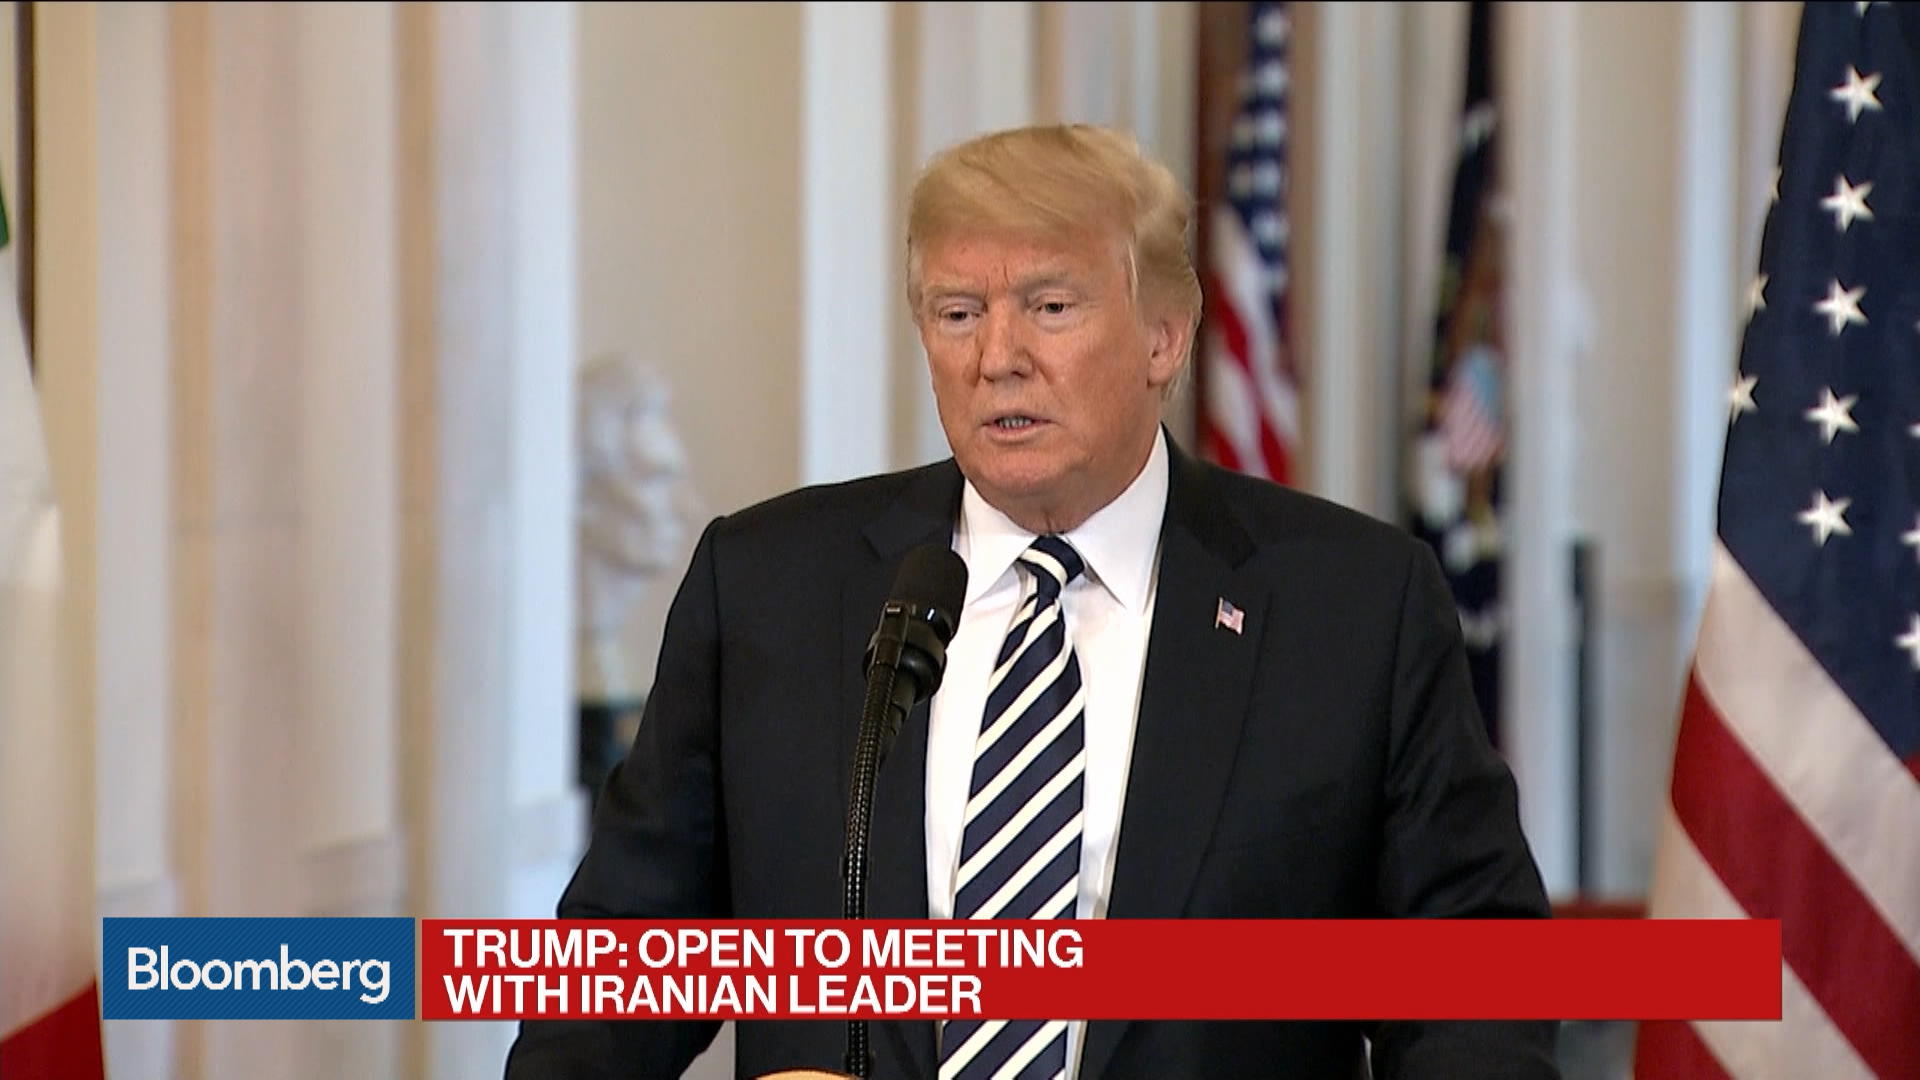 Trump Says He'd Meet Iran's Rouhani Without Preconditions